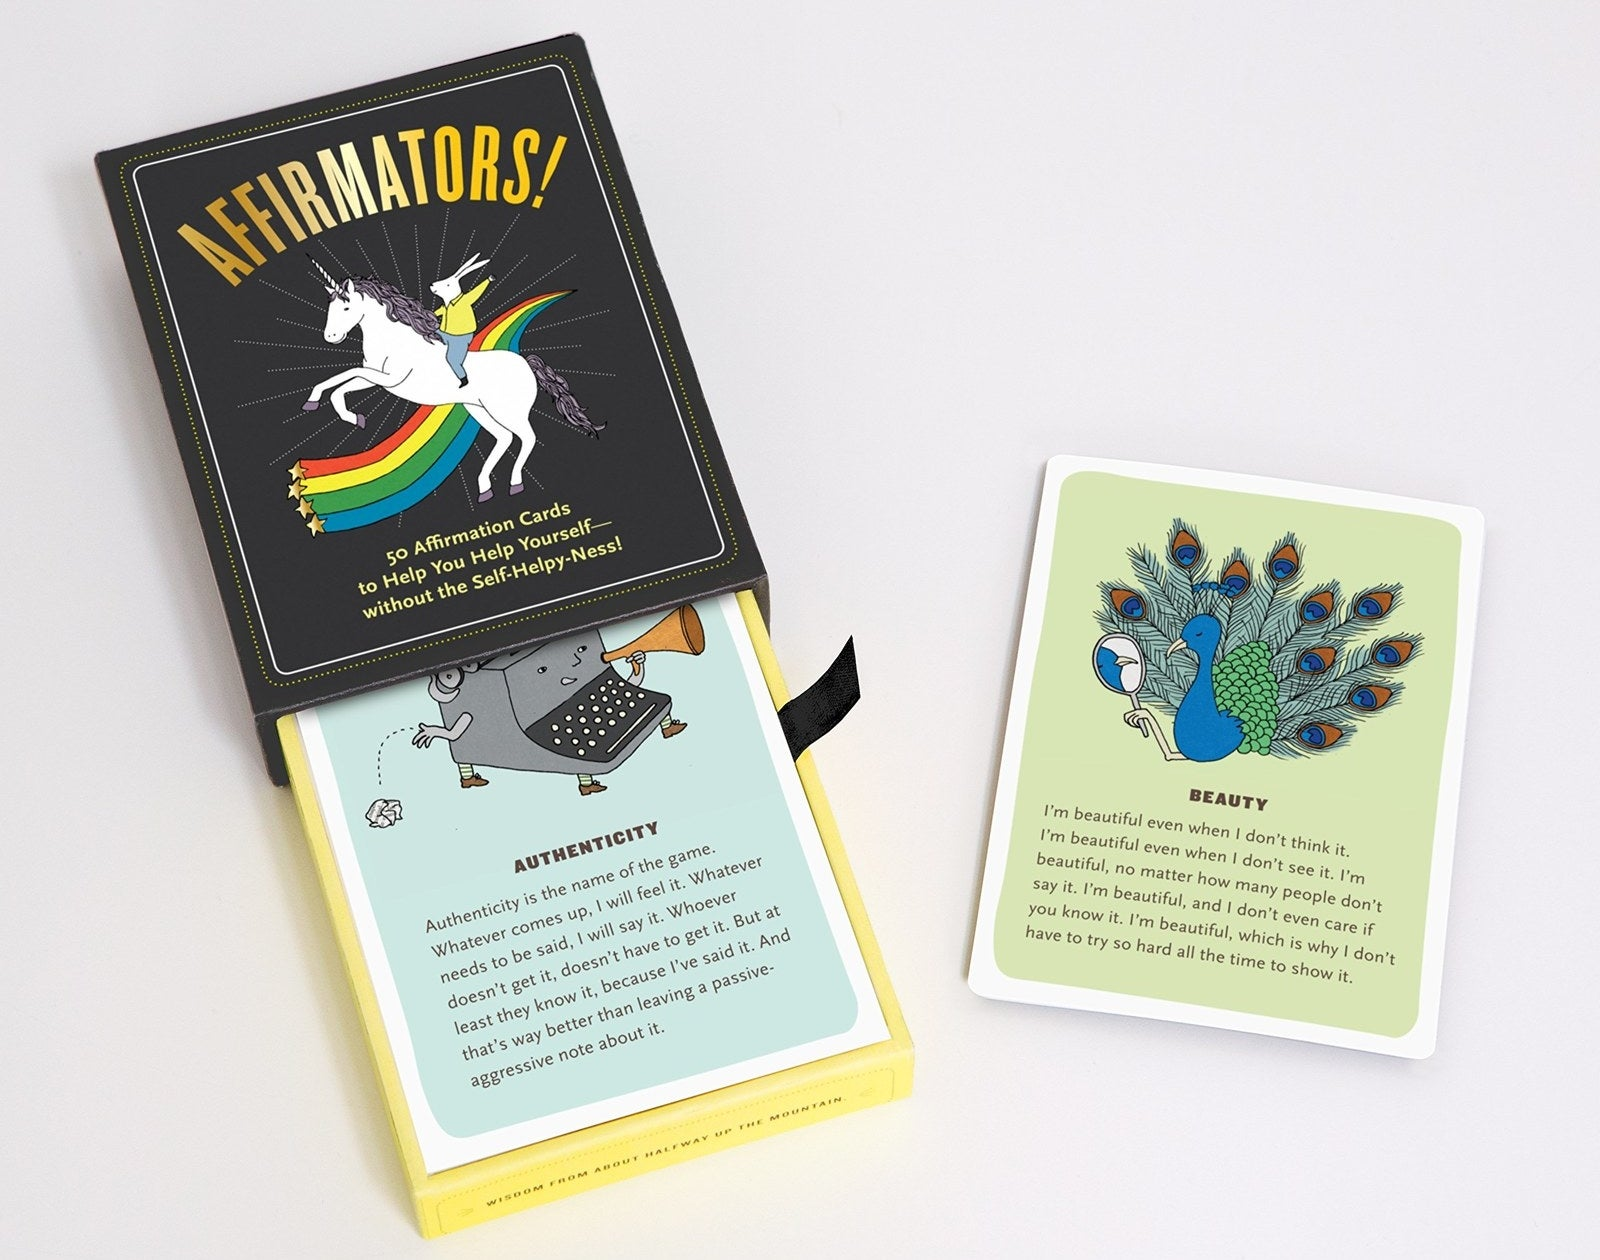 """Promising review: """"Seriously the best thing ever. I love these cards. Each one is unique and has its own hilarious, charming, and heart-warming description. It's also ridiculously spot on. Call it what you will but every time I or a friend draw a card, it is directly linked to something I am going through currently. It's AWESOME! It's always extremely uplifting, even on the toughest of days. I would highly recommend this."""" —Preston Parsons Get them from Amazon for $11.58."""